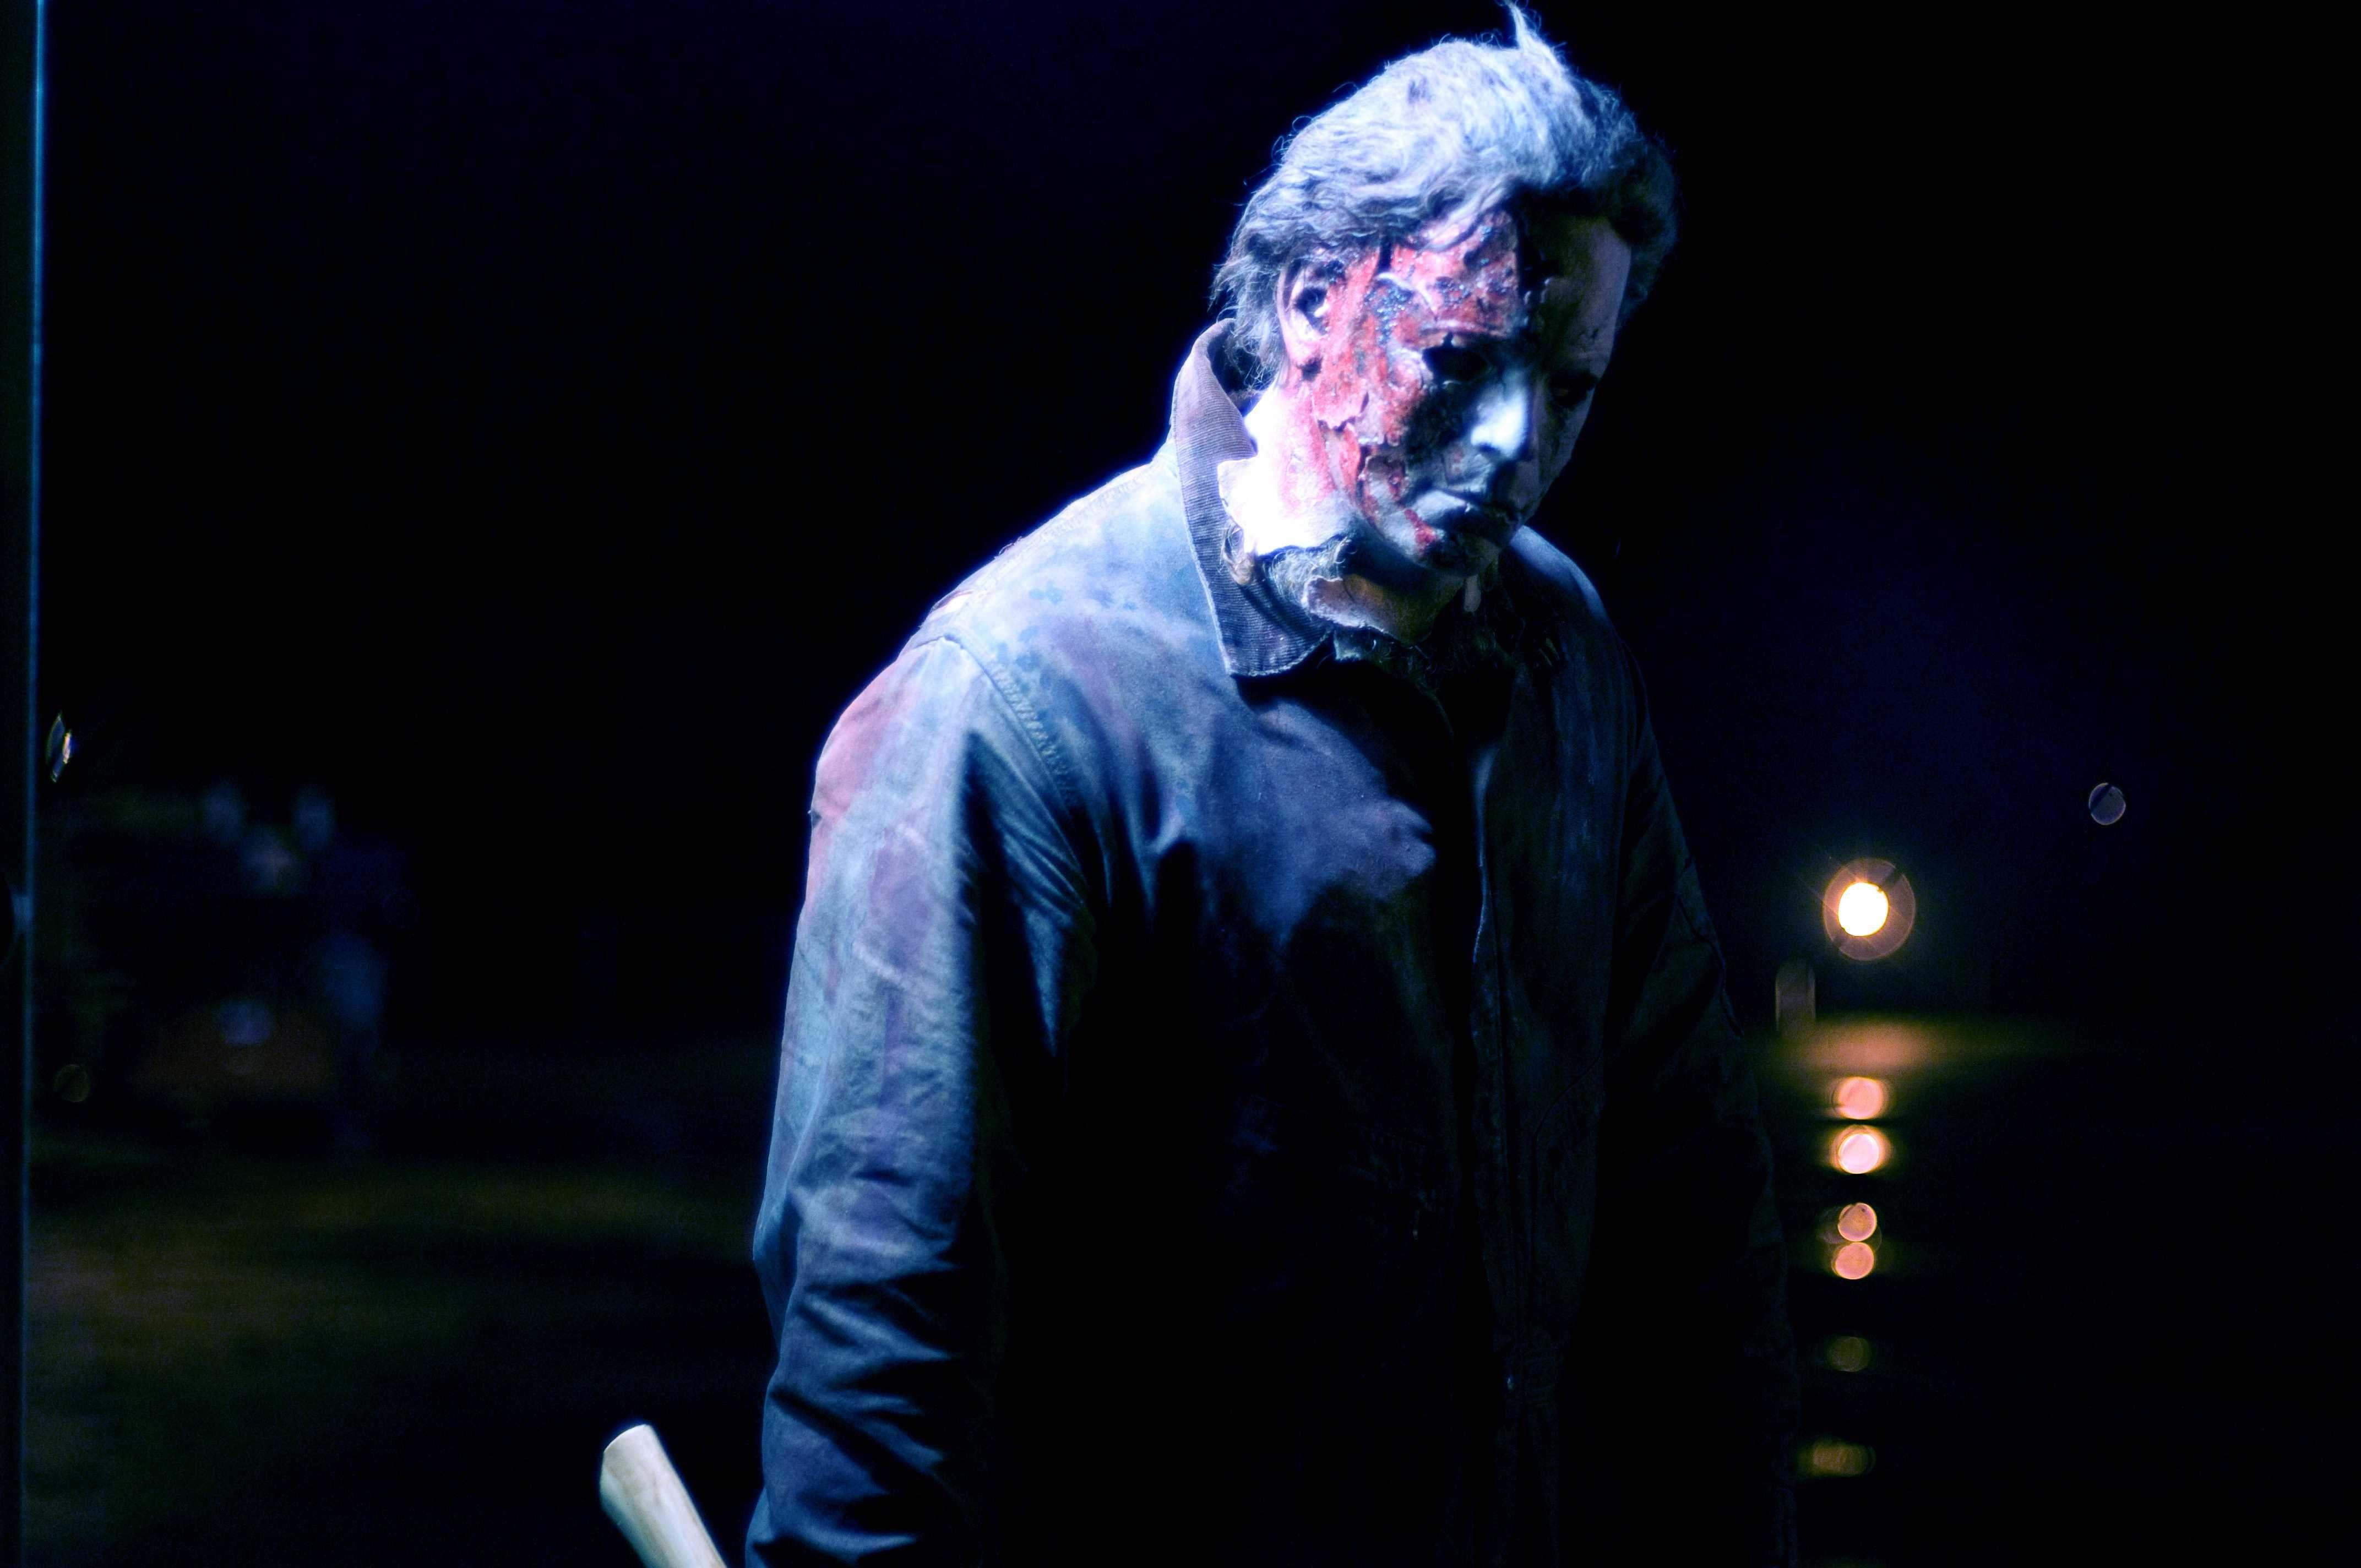 Rob Zombie Michael Myers Wallpapers Image & Pictures